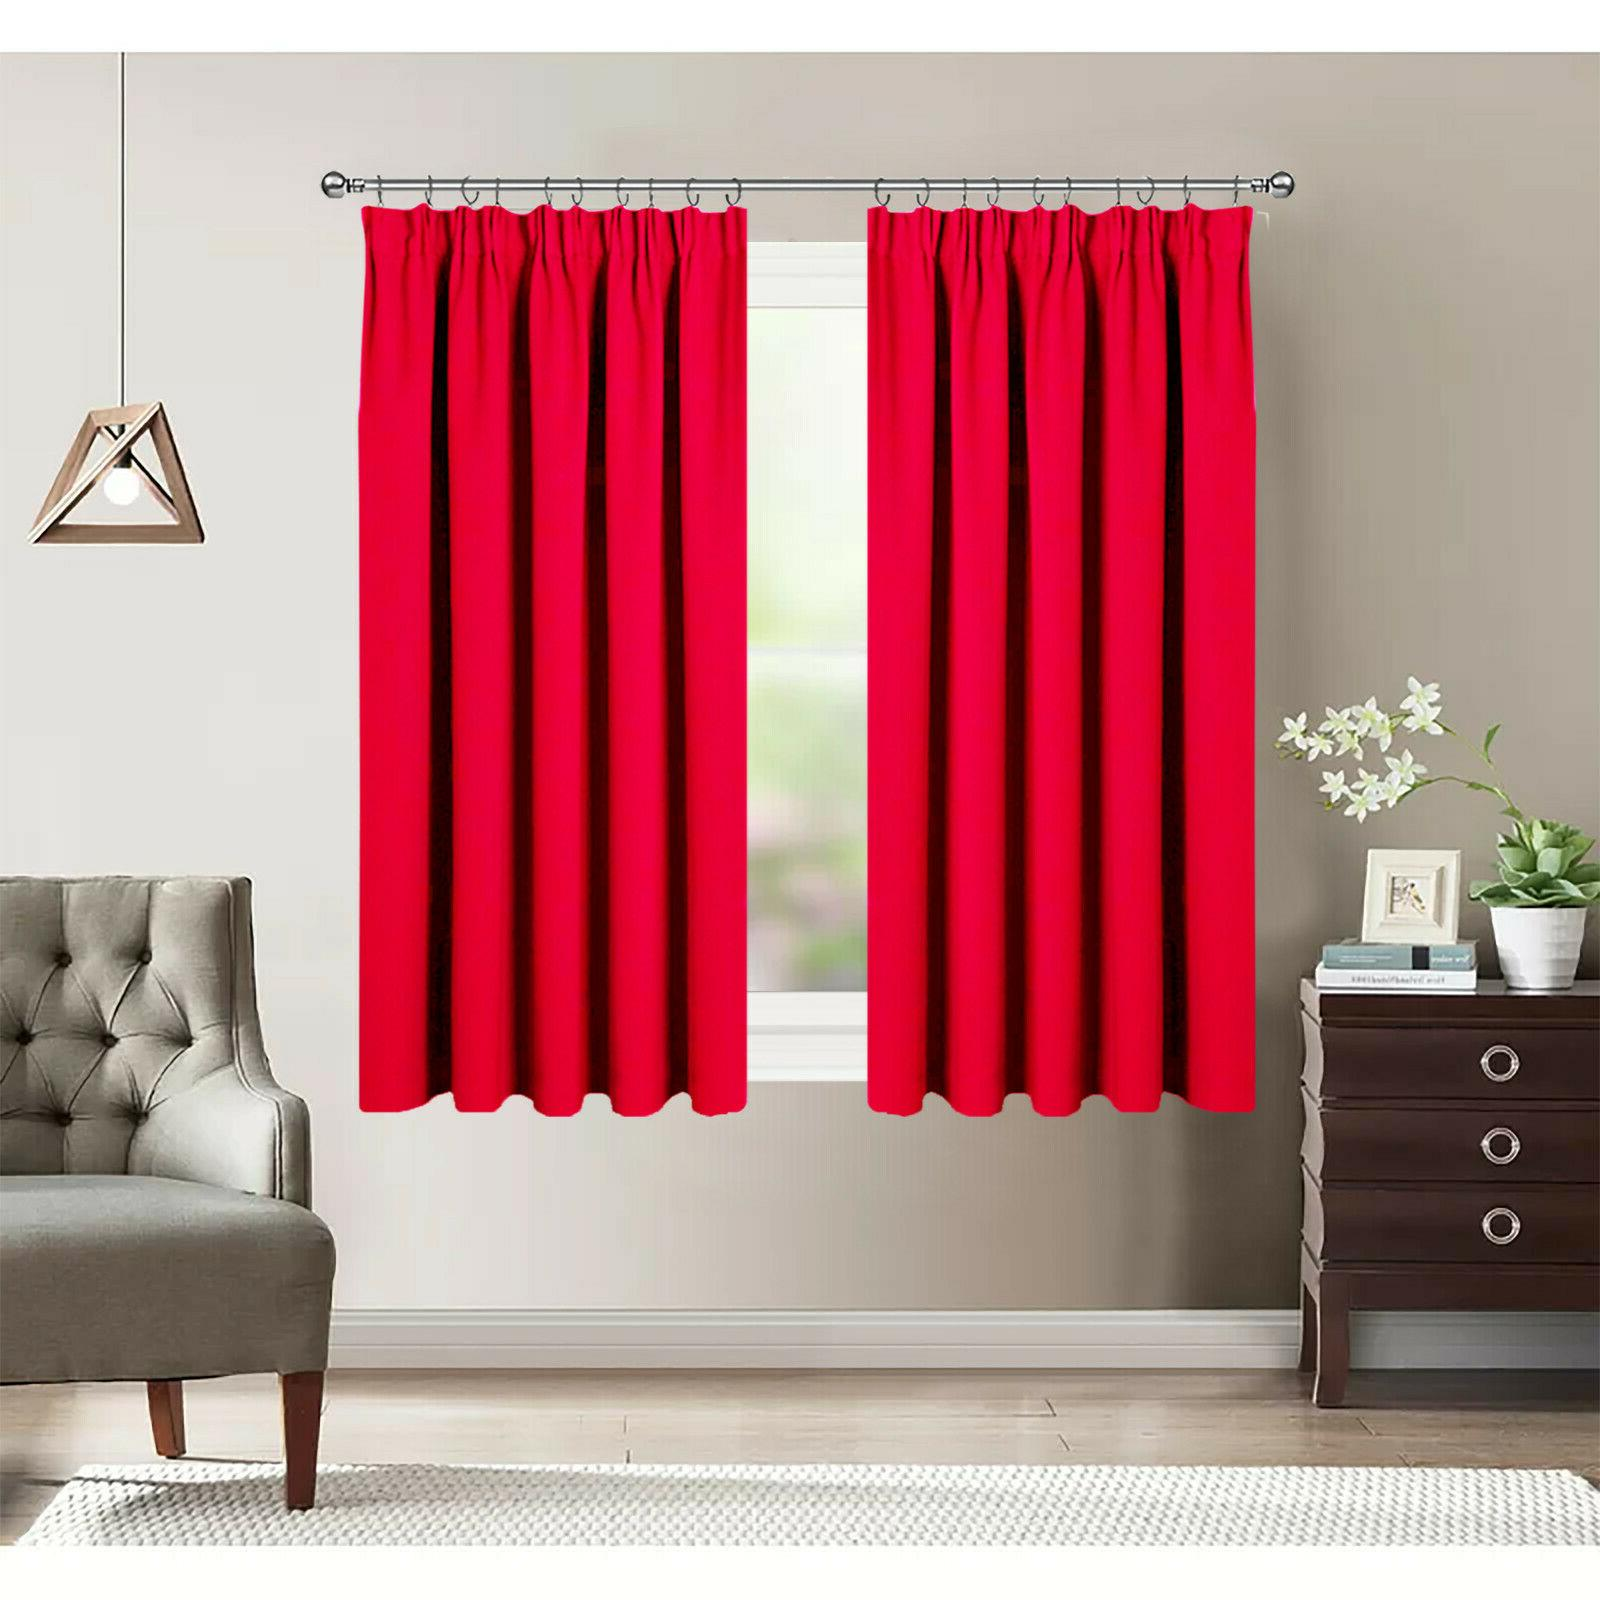 Thermal Insulated Blackout Window Pencil Curtain for